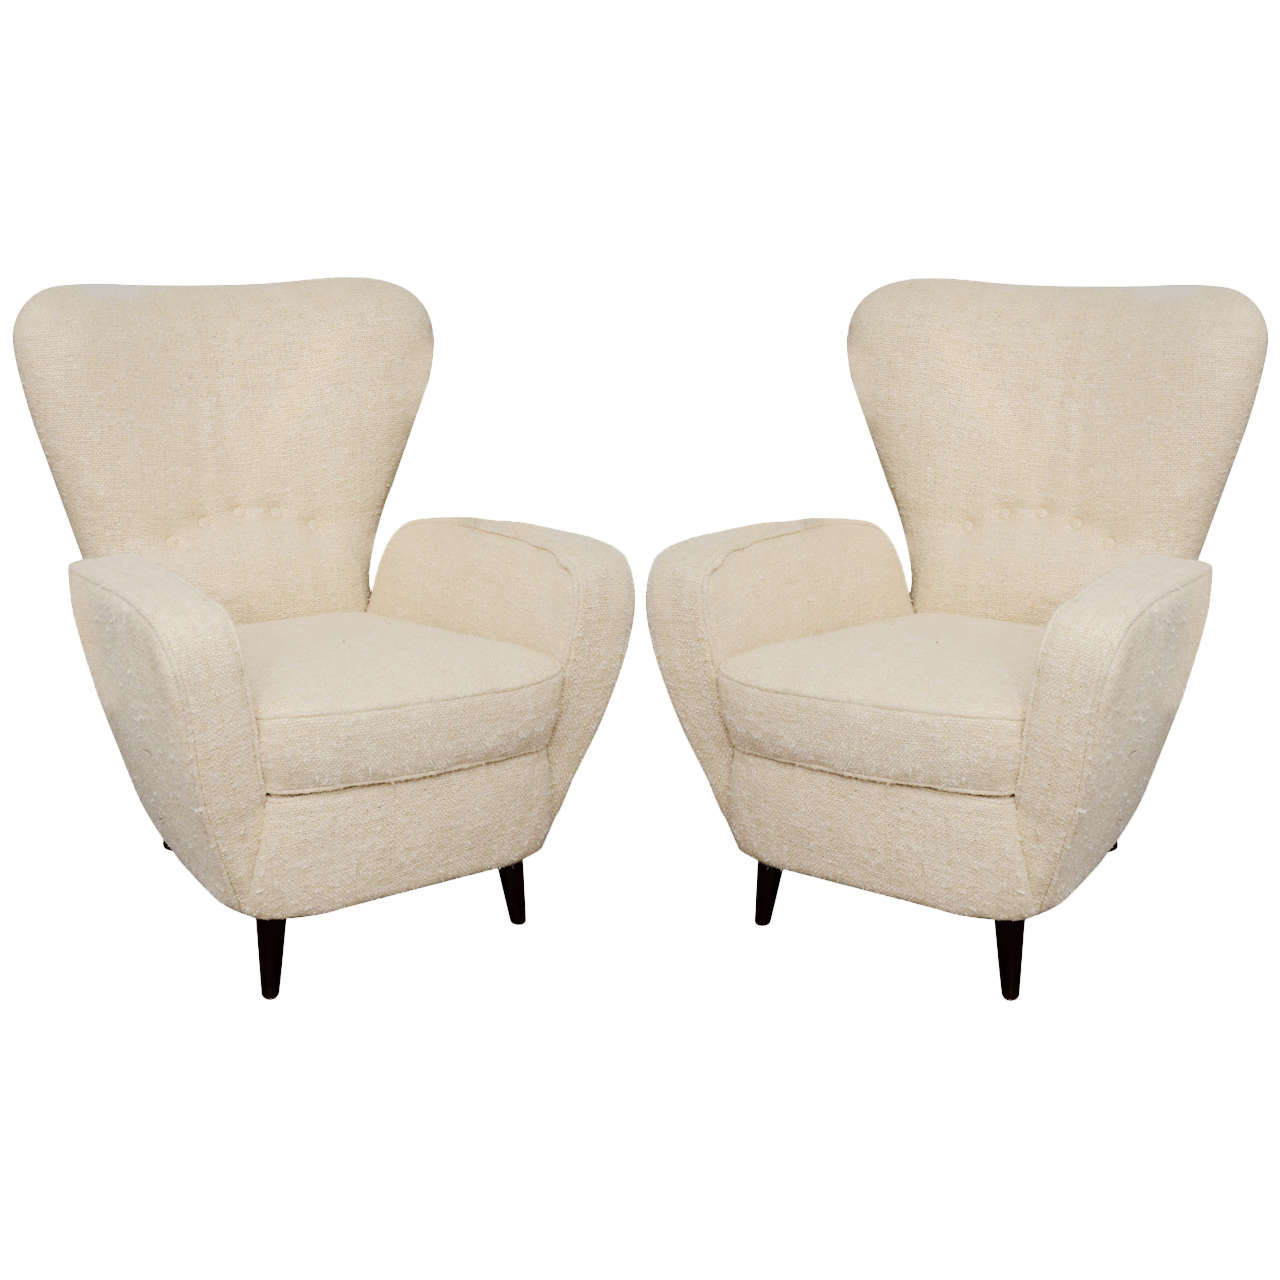 Custom modern chippendale wing chair by ethan allen at 1stdibs - Pair Of Modern Wing Chairs